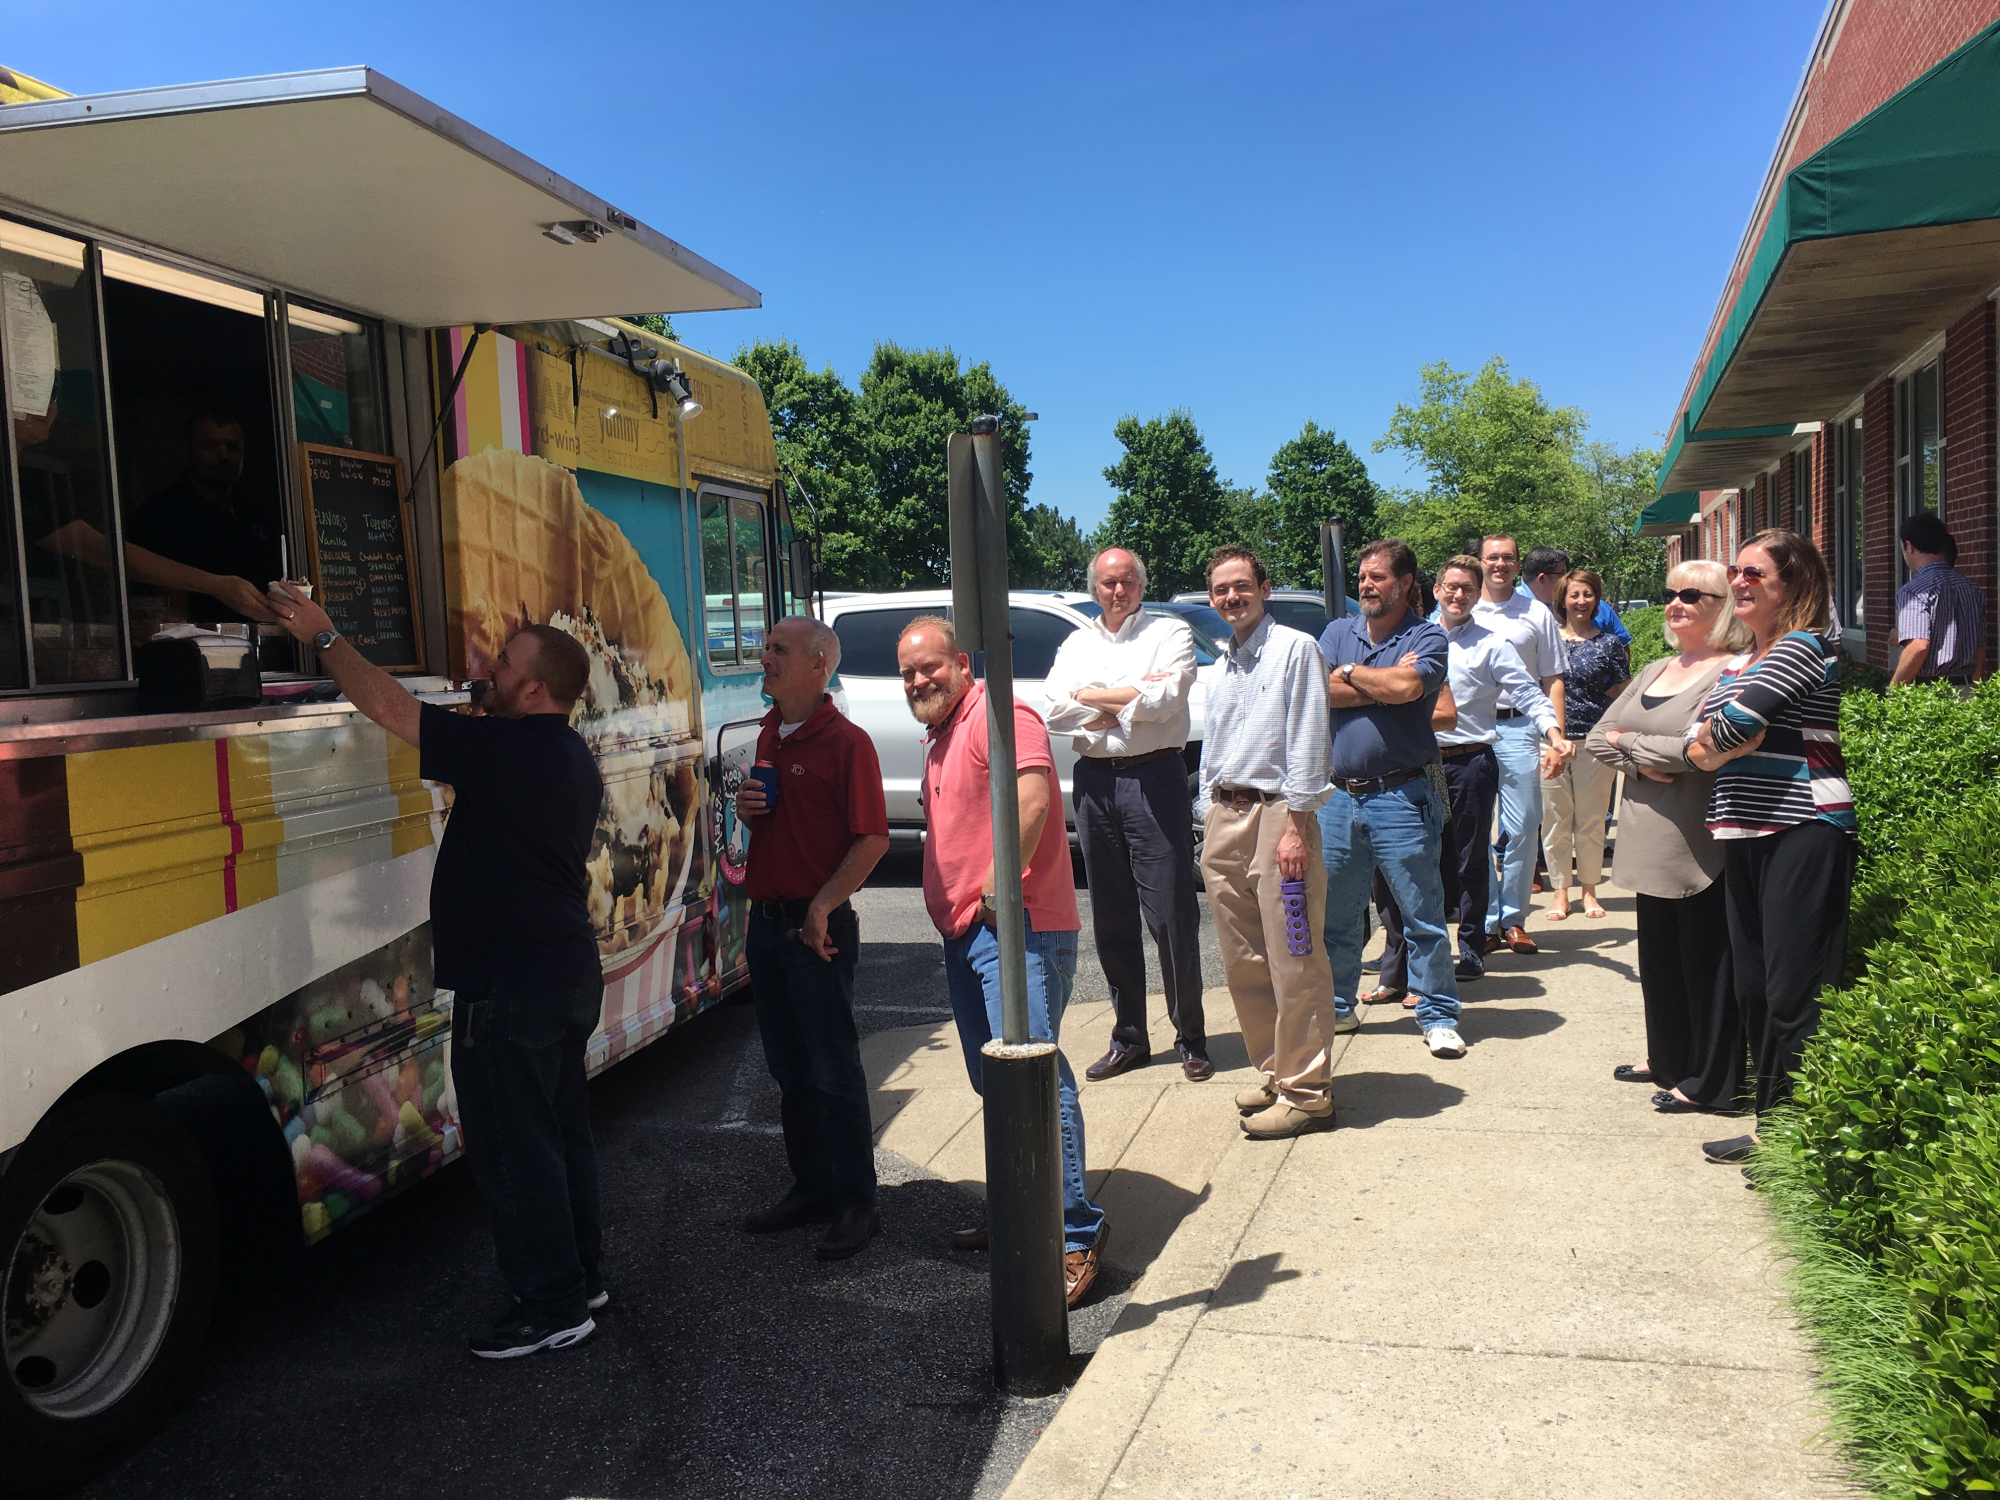 ICT employees line up to enjoy a visit from a food truck that stopped by the office on a pretty day